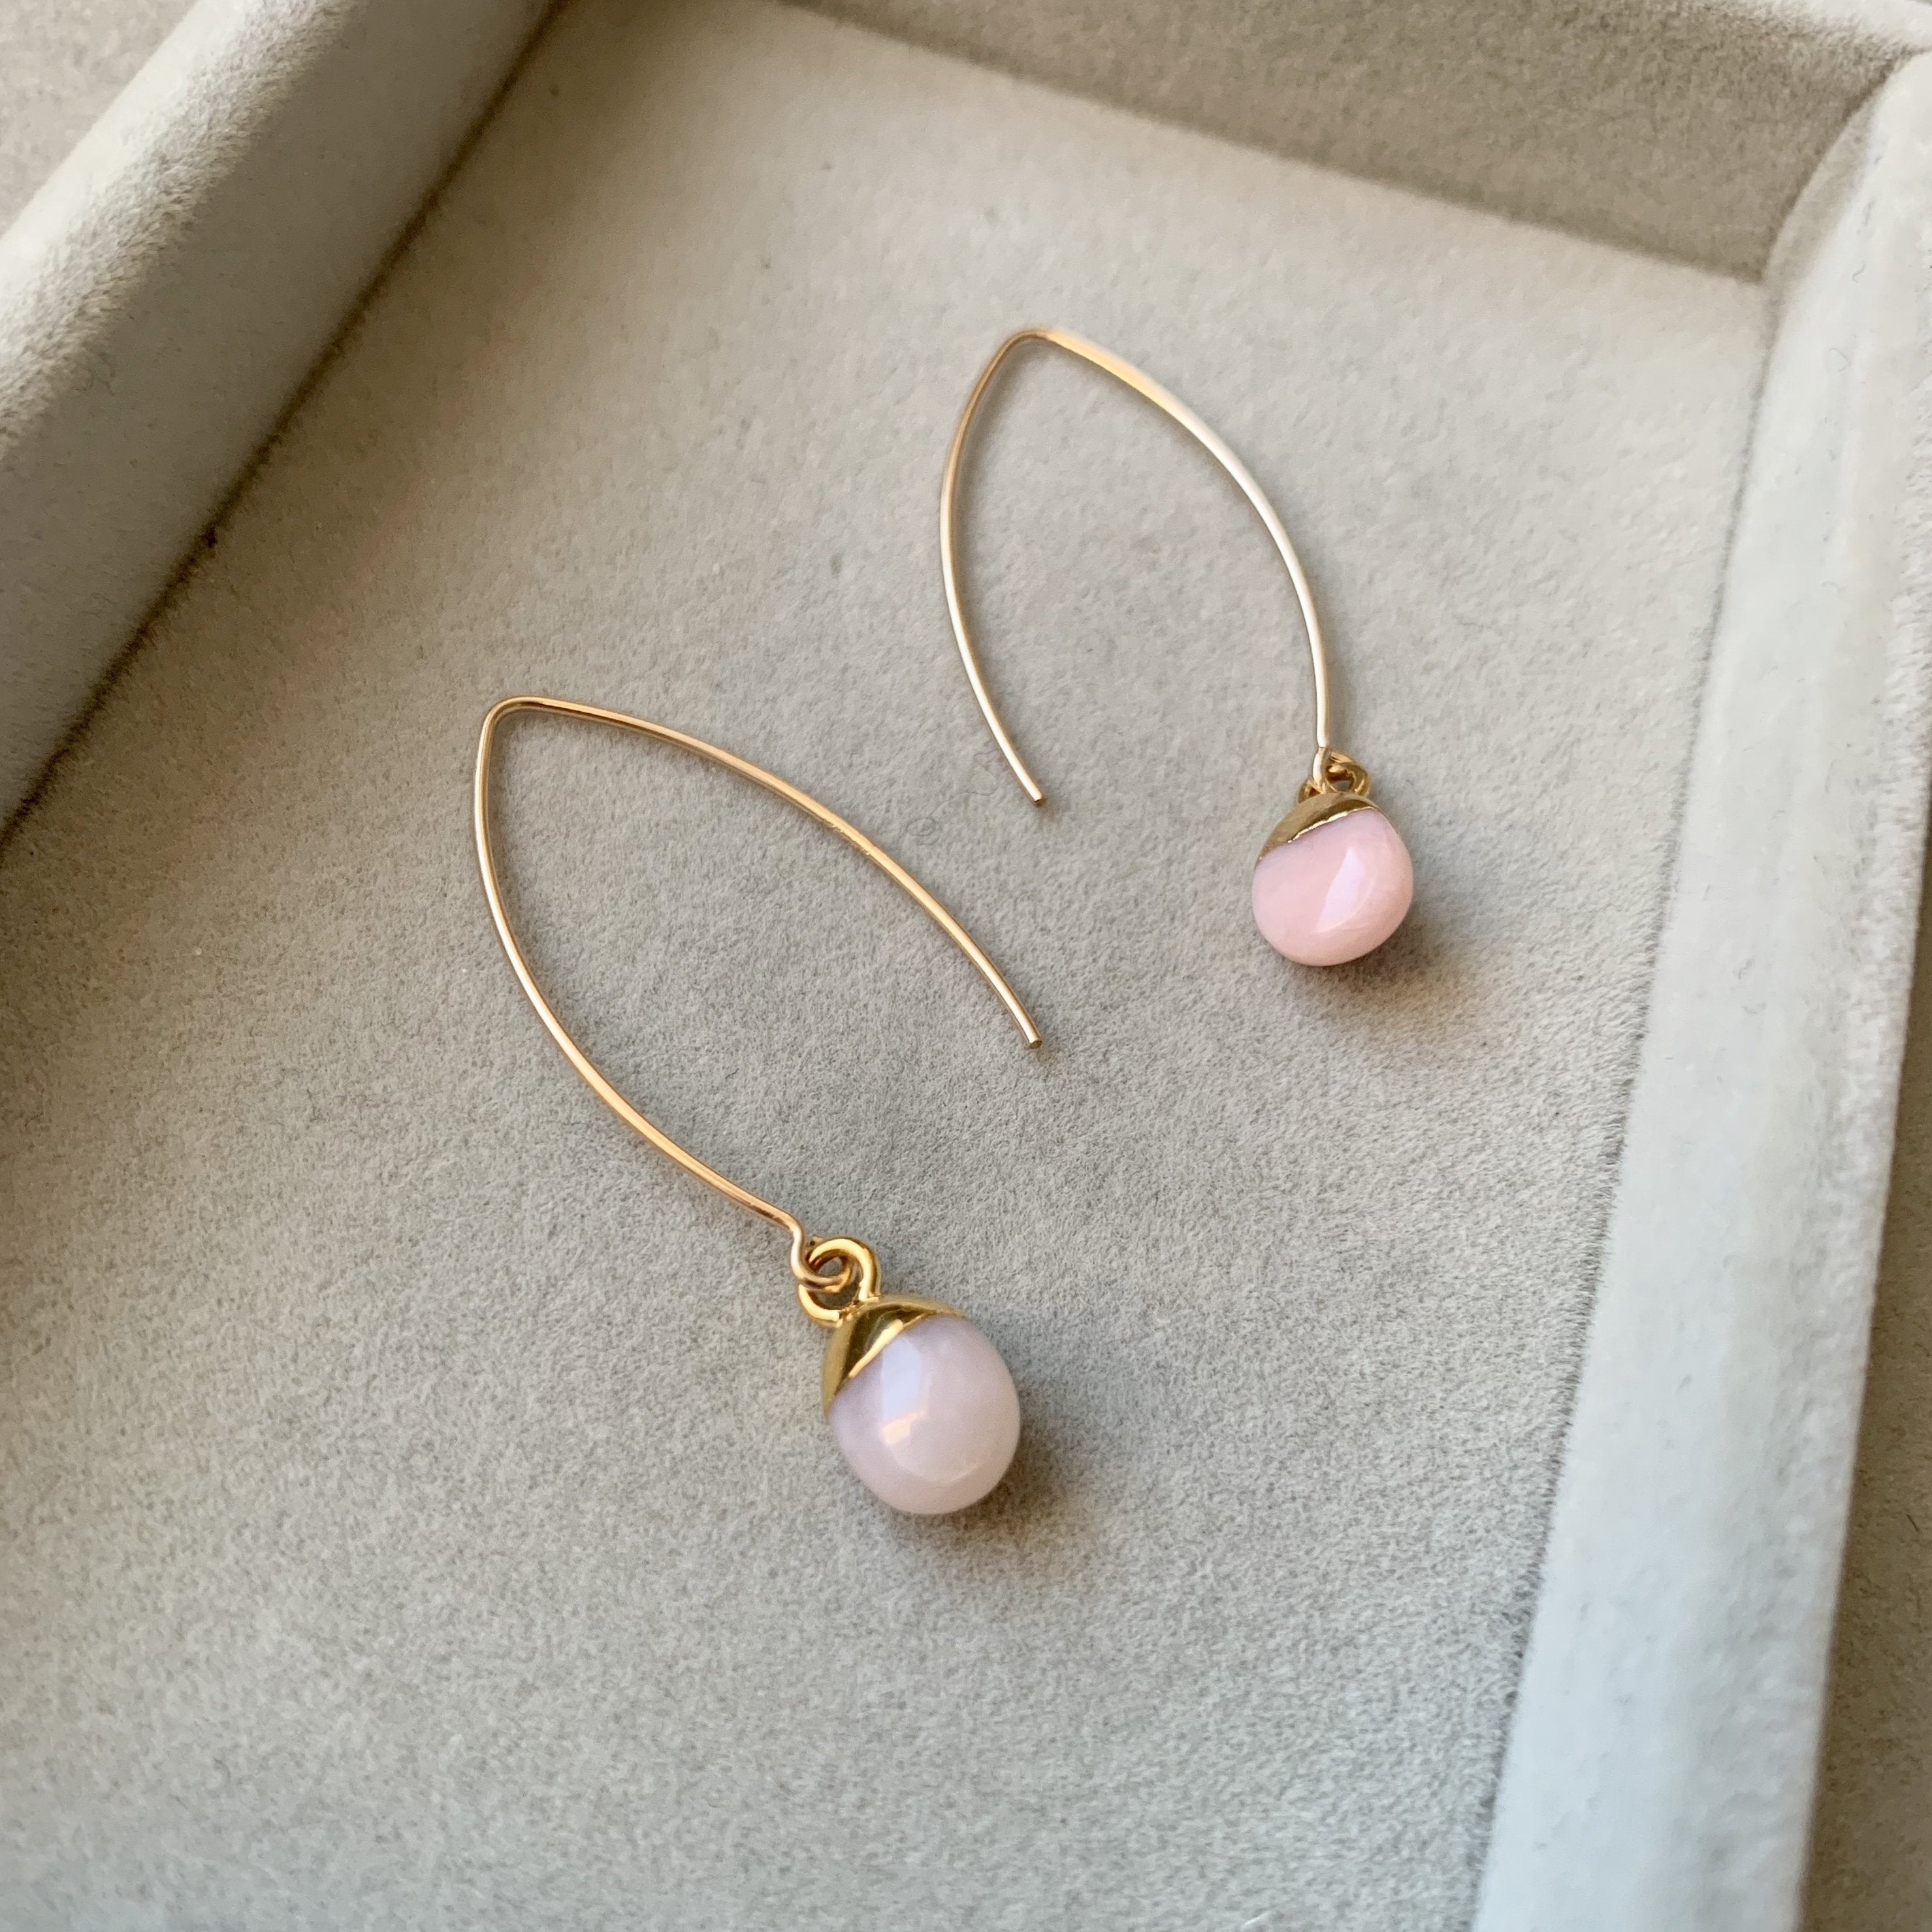 Tiny Tumbled Gemstone Dropper Earrings - OCTOBER, Pink Opal (Hope) - Decadorn